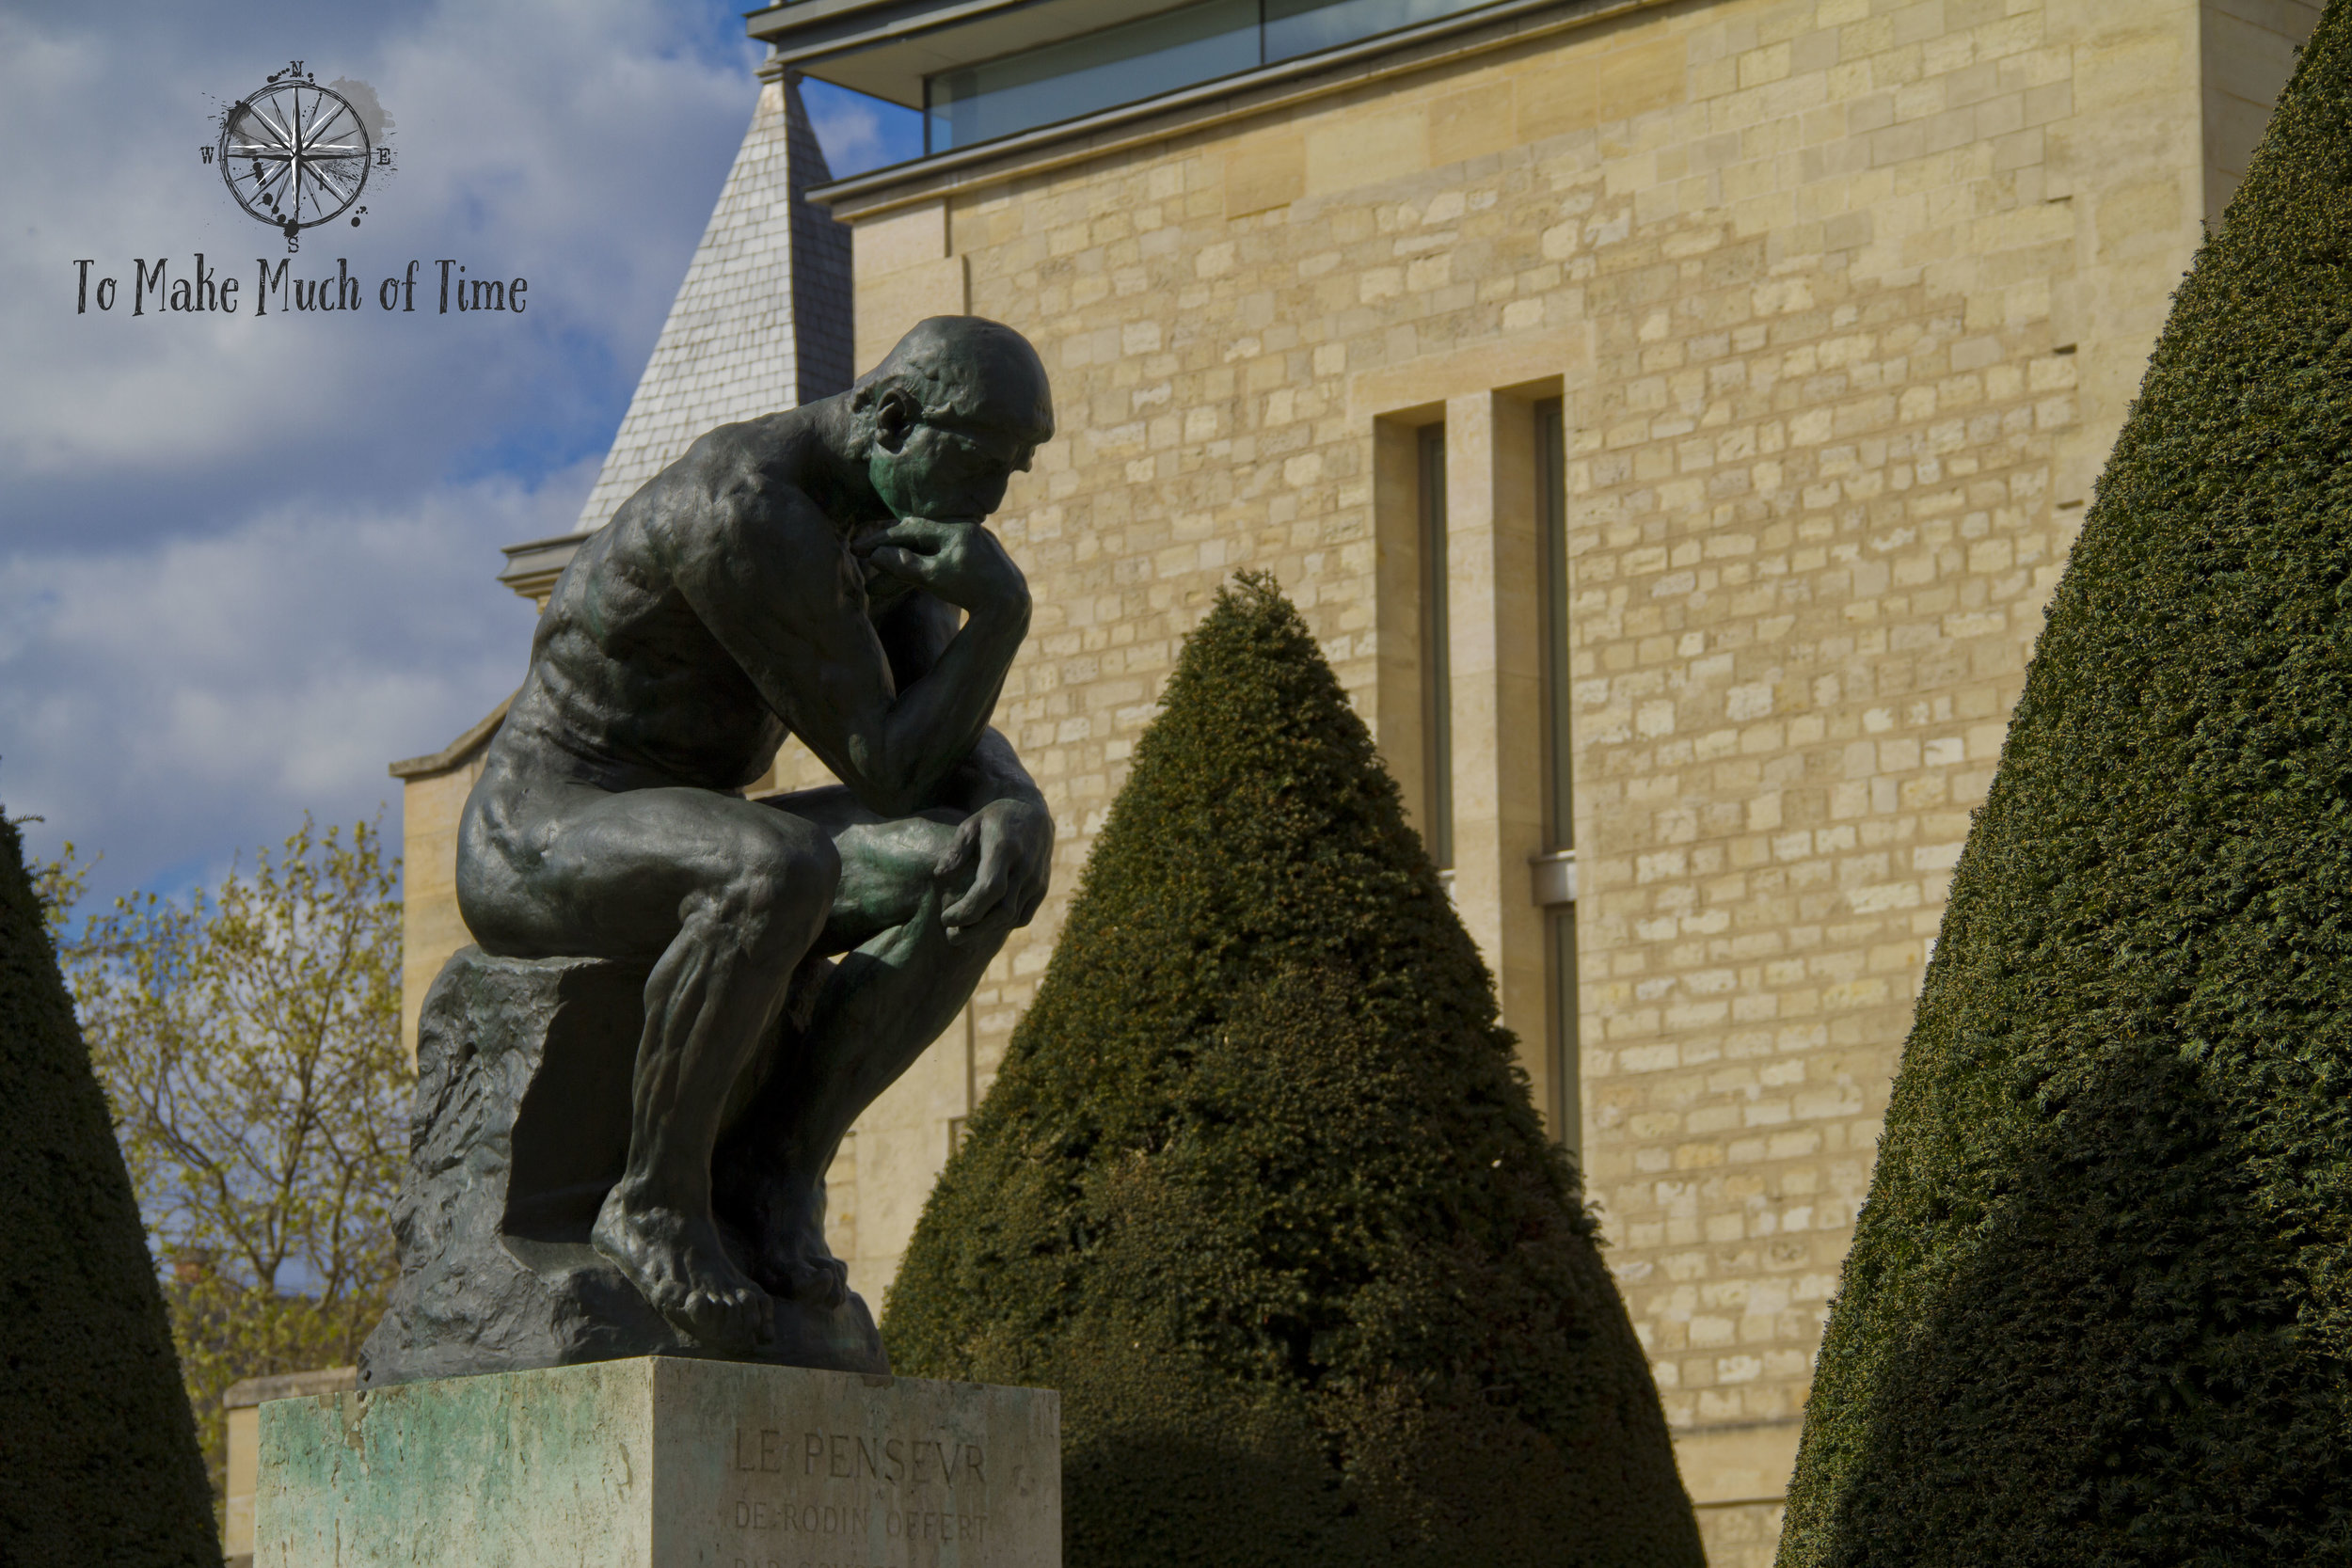 Le Pensevr - The Thinker is a neat sculpture with a fascinating origin story. Read more about it  here